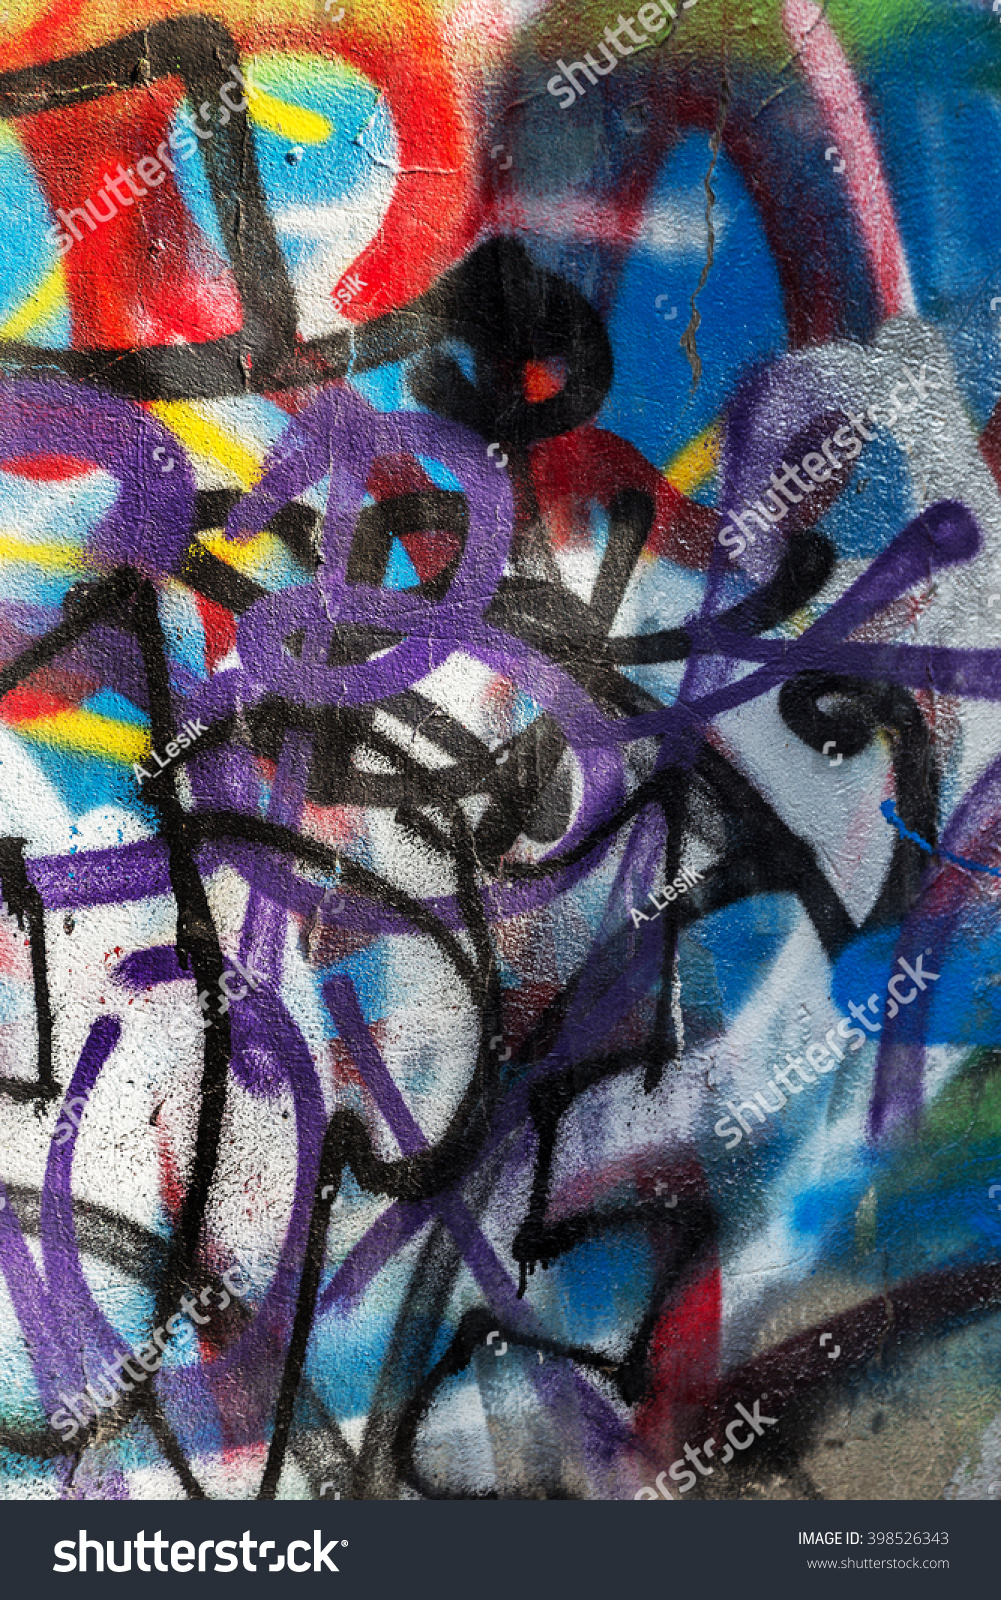 Beautiful street art of graffiti abstract creative drawing fashion on walls of the city urban contemporary culture name of paint on walls